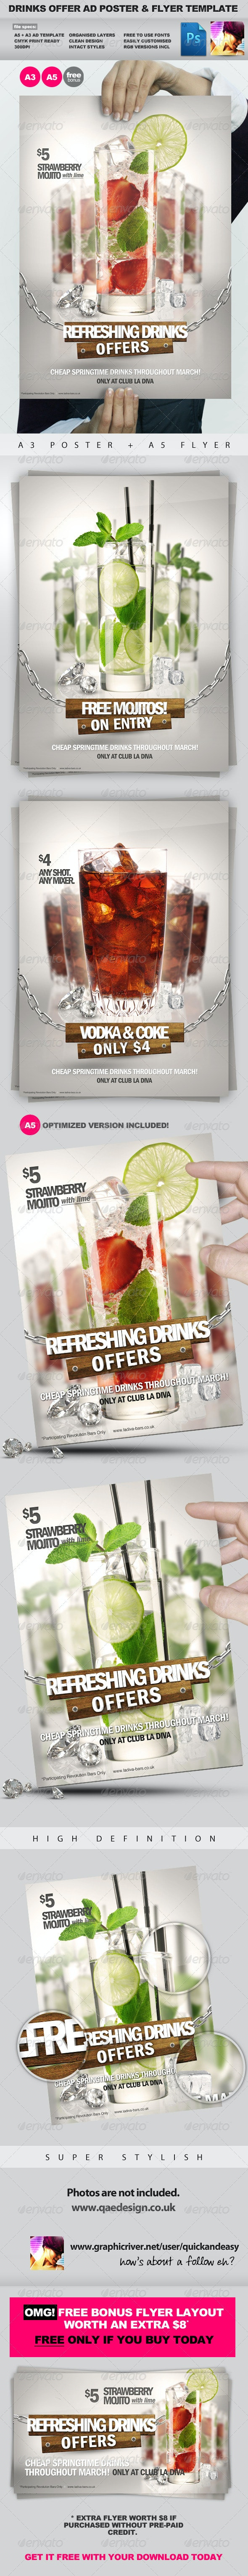 Drinks Promotion Advert Template Vol.2 - Corporate Flyers